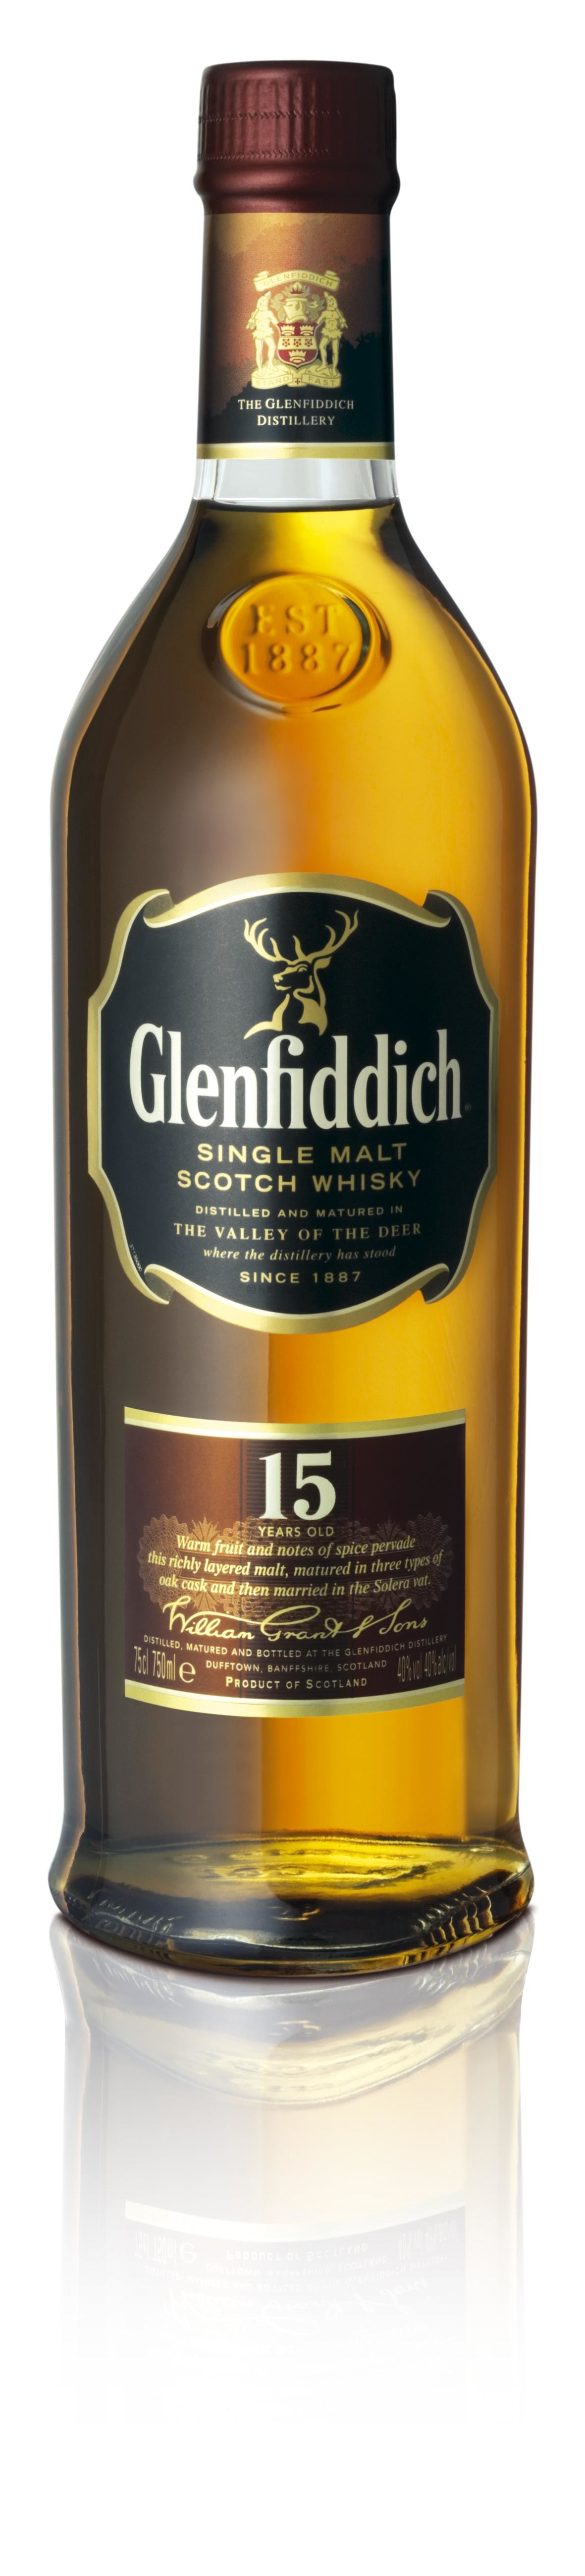 Glenfiddich 15Year 70cl 40% Speyside Single Malt Scotch Whisky